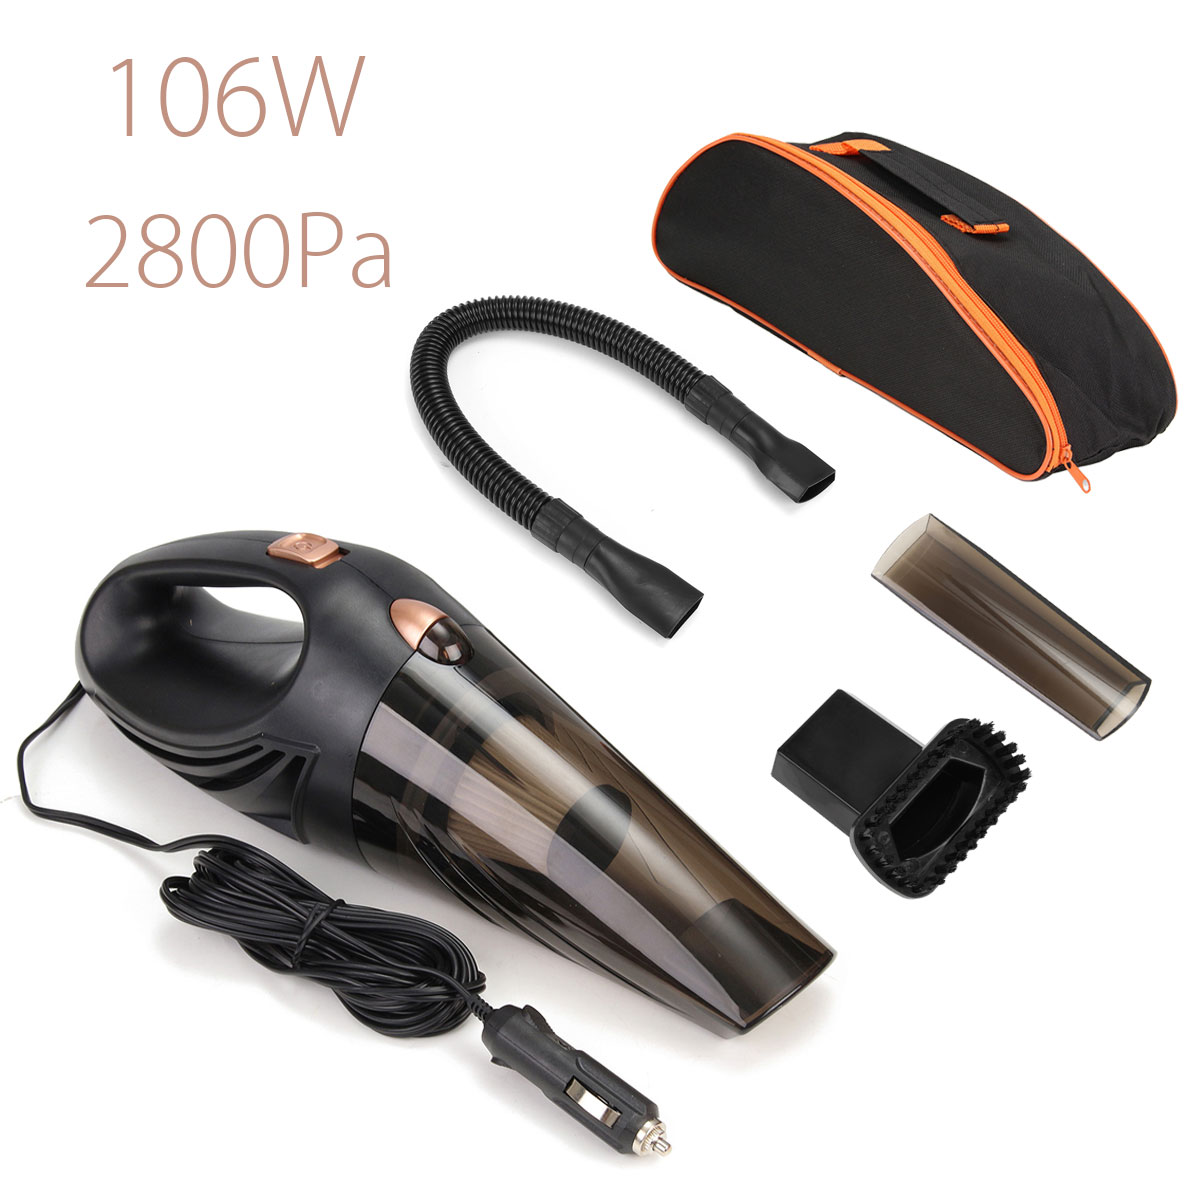 106W 12V 4 in 1 1Portable Handheld Wet and Dry Car Vacuum Cleaner with Bag